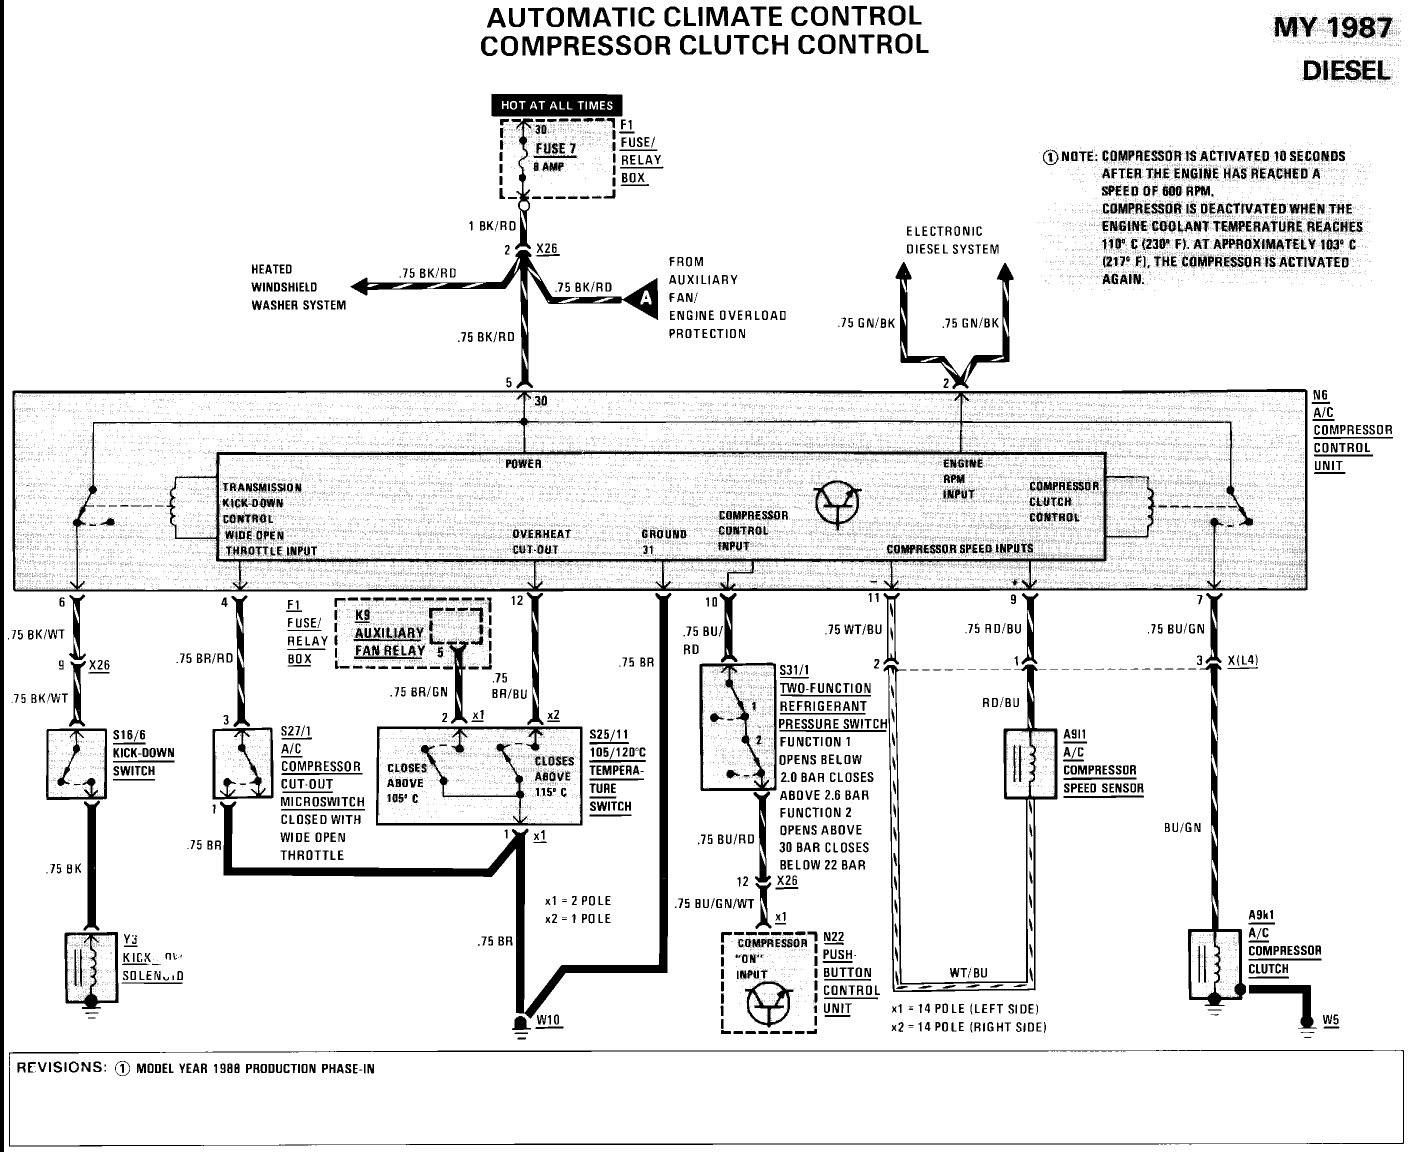 Wiring Diagram For Mercedes 300d : Awesome mercedes d wiring diagram gallery electrical